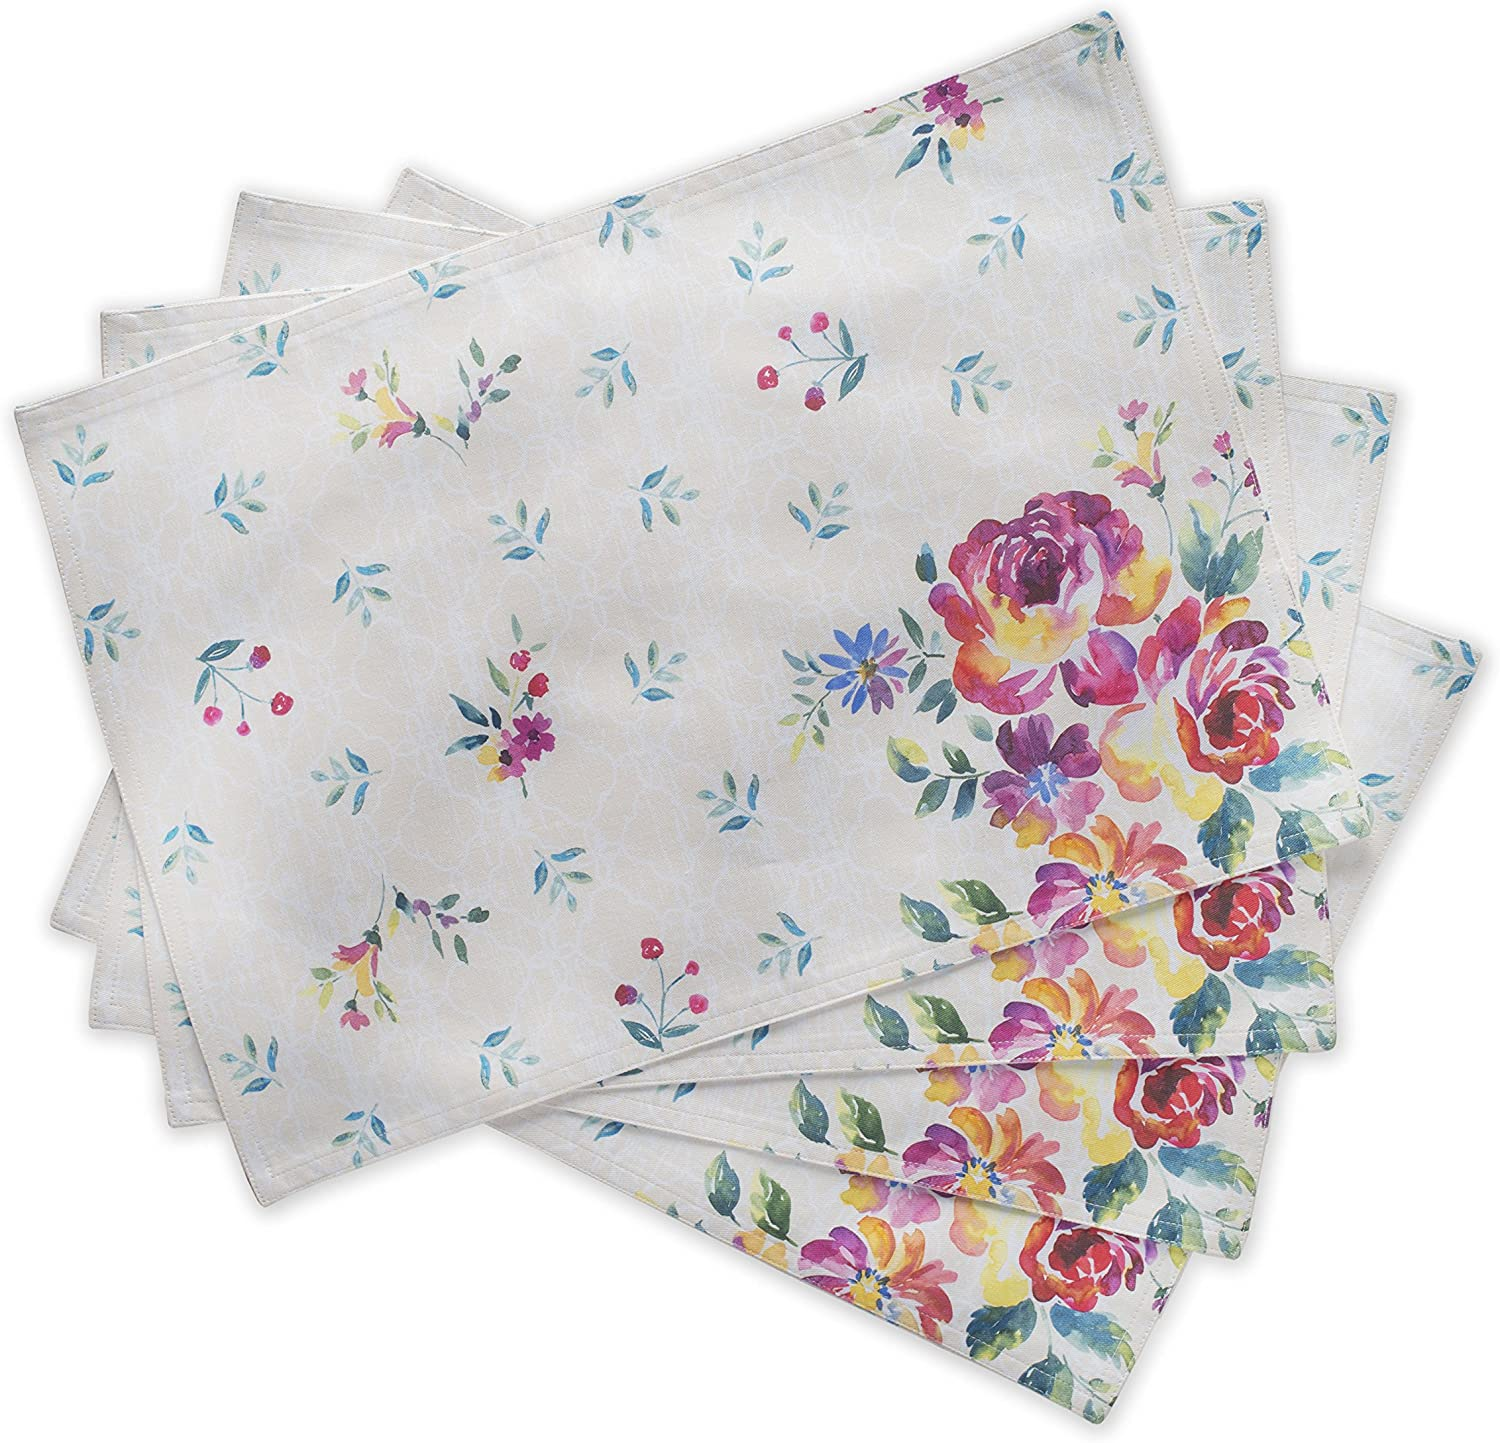 Maison d' Hermine Rose Garden 100% Cotton Set of 4 Placemats for Dining Table | Kitchen | Wedding | Everyday Use | Spring/Summer | Dinner Parties (13 Inch by 19 Inch)